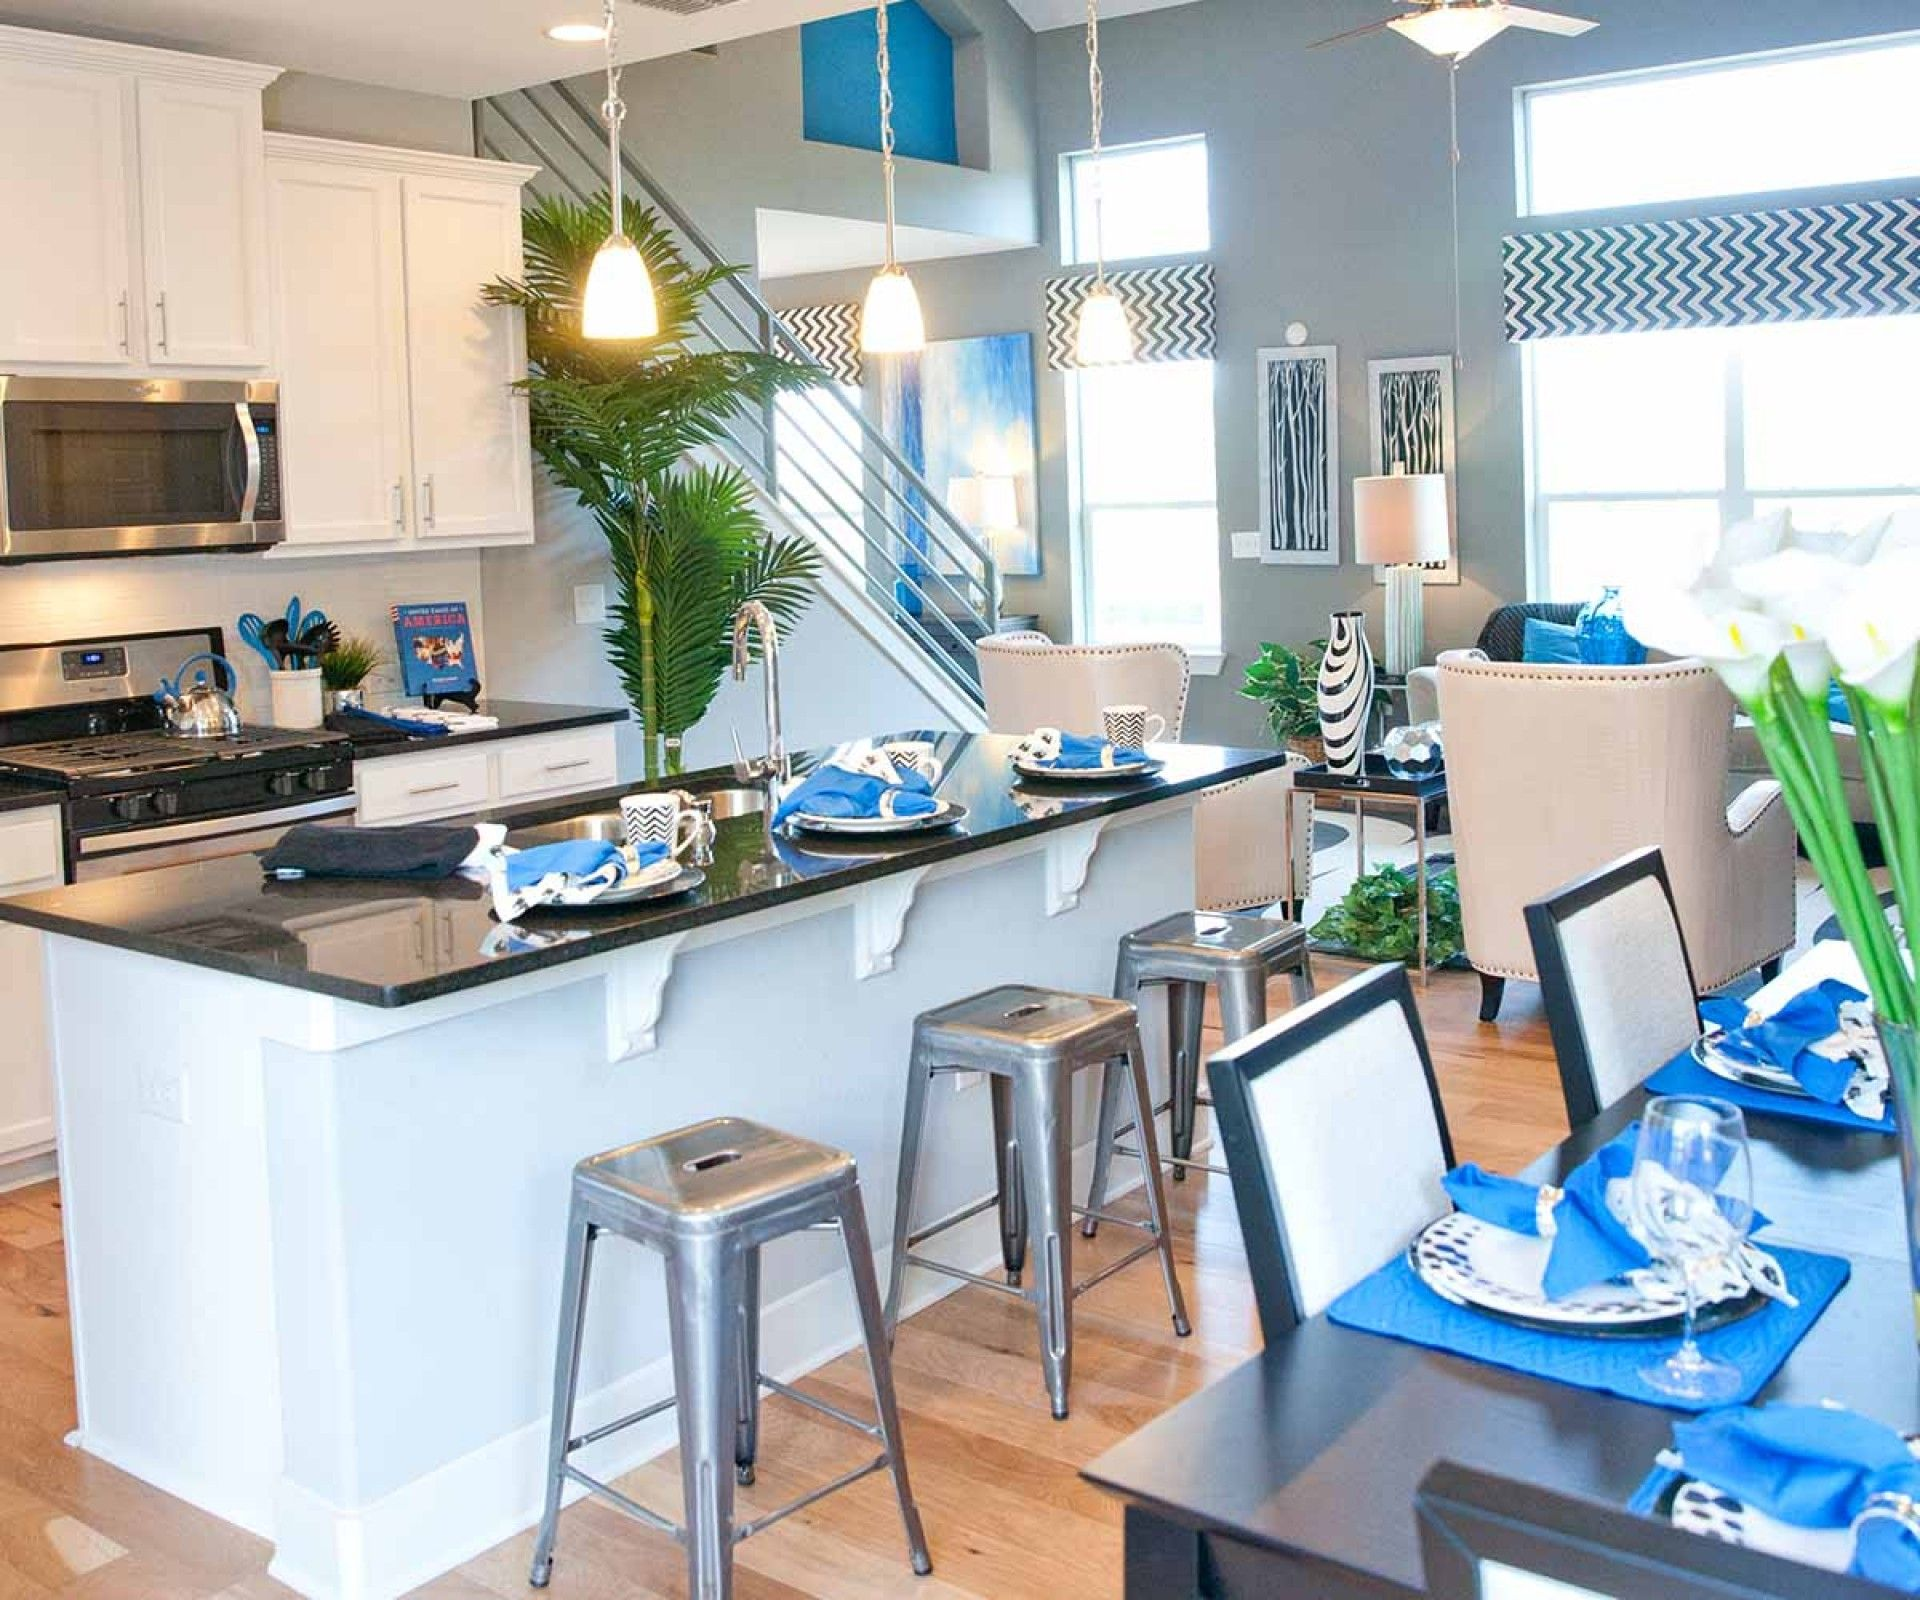 Fall in love with this modern kitchen with bright blues and accents ...